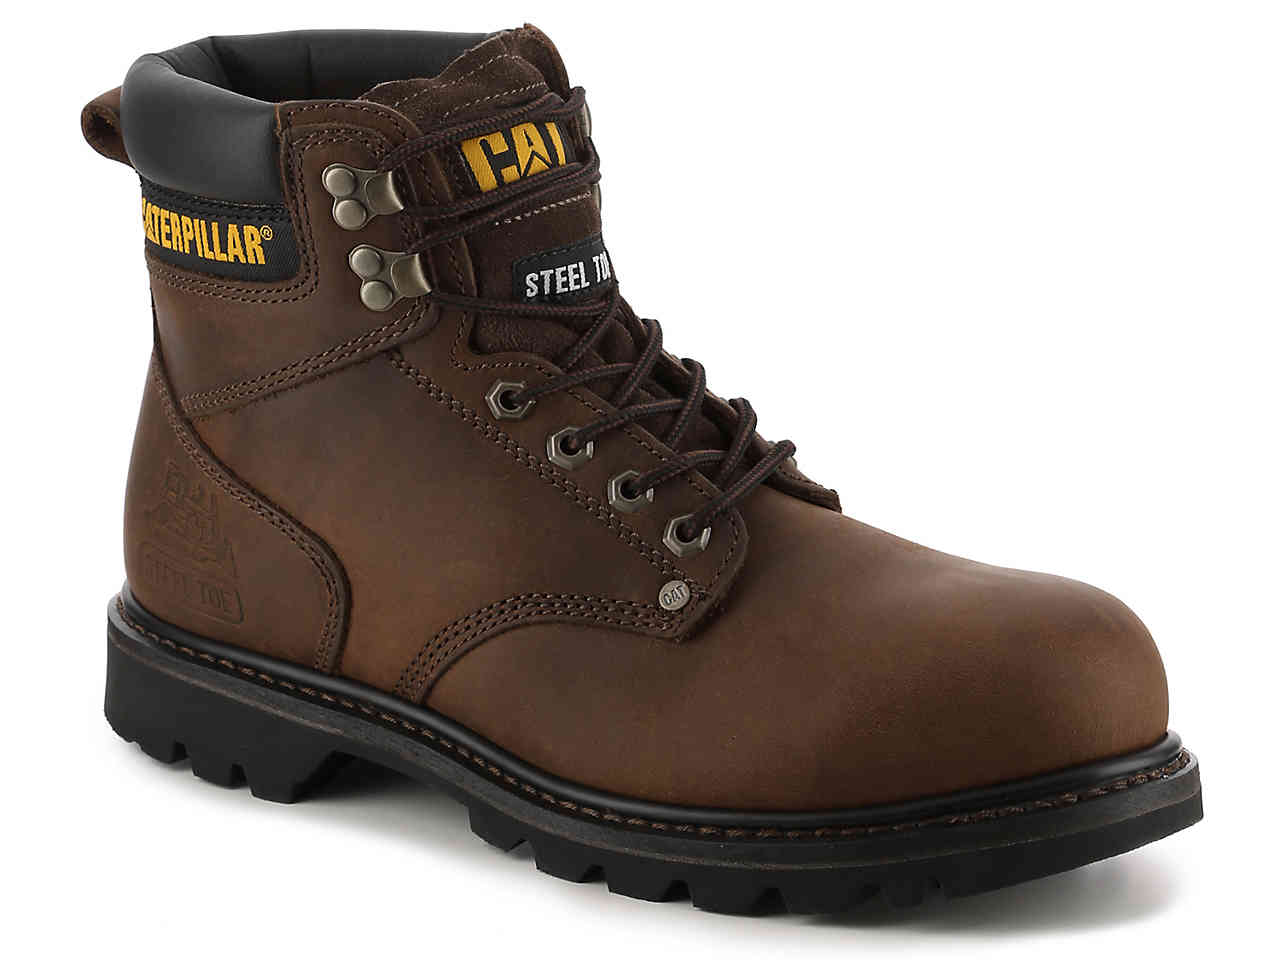 2nd shift waterproof work boots